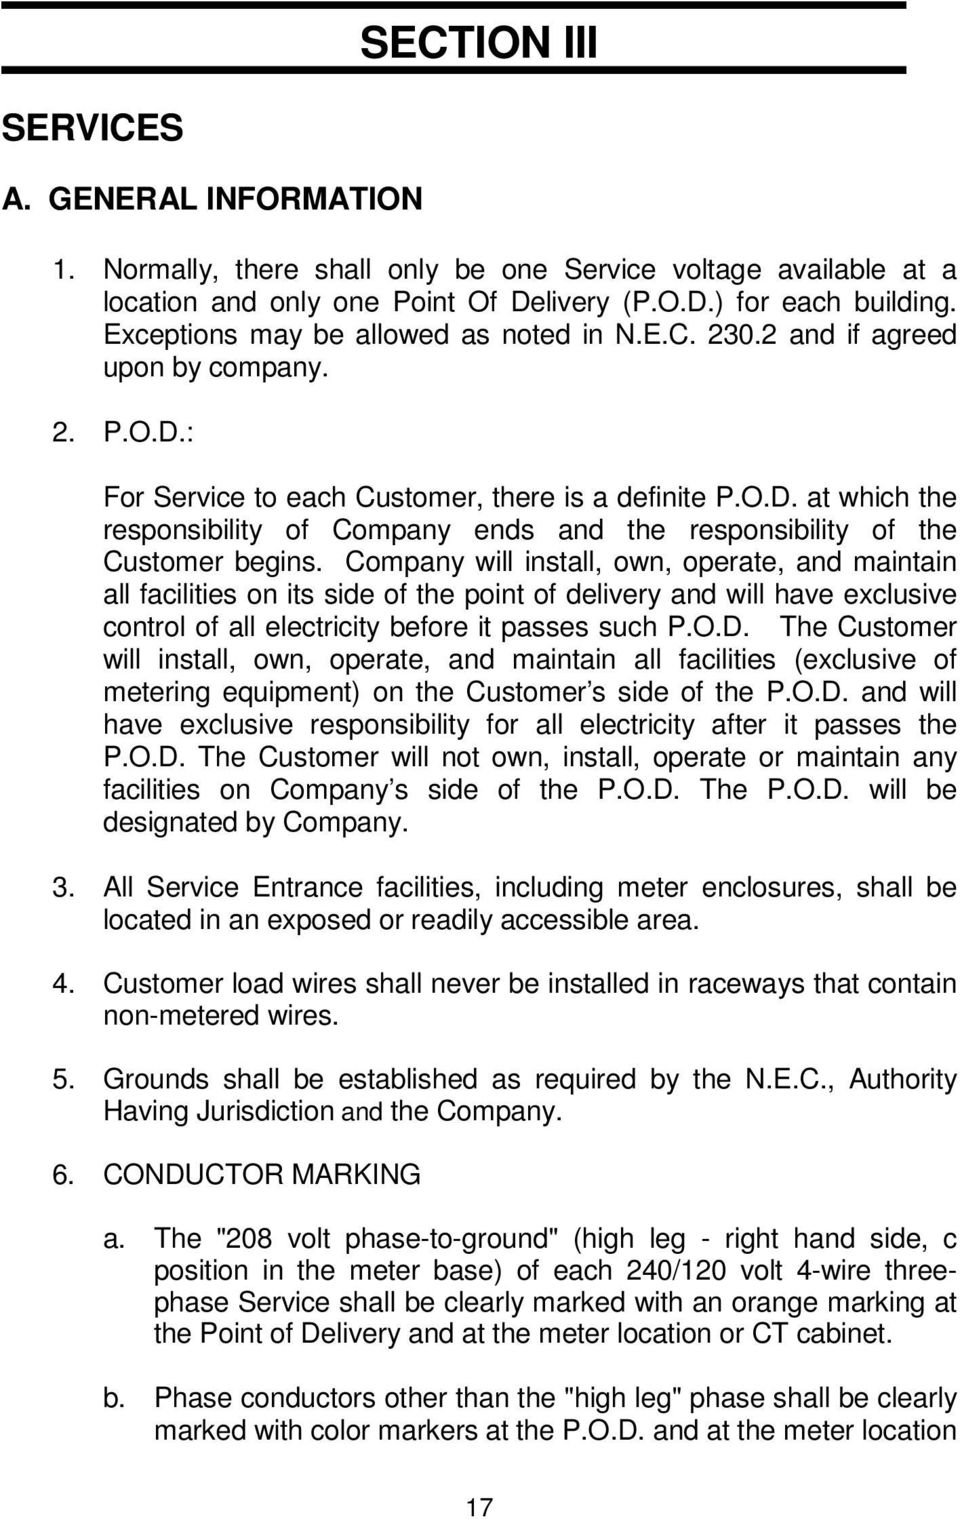 Requirements For Electric Service And Meter Installations Former Ct Cabinet Wiring Diagram Company Will Install Own Operate Maintain All Facilities On Its Side Of